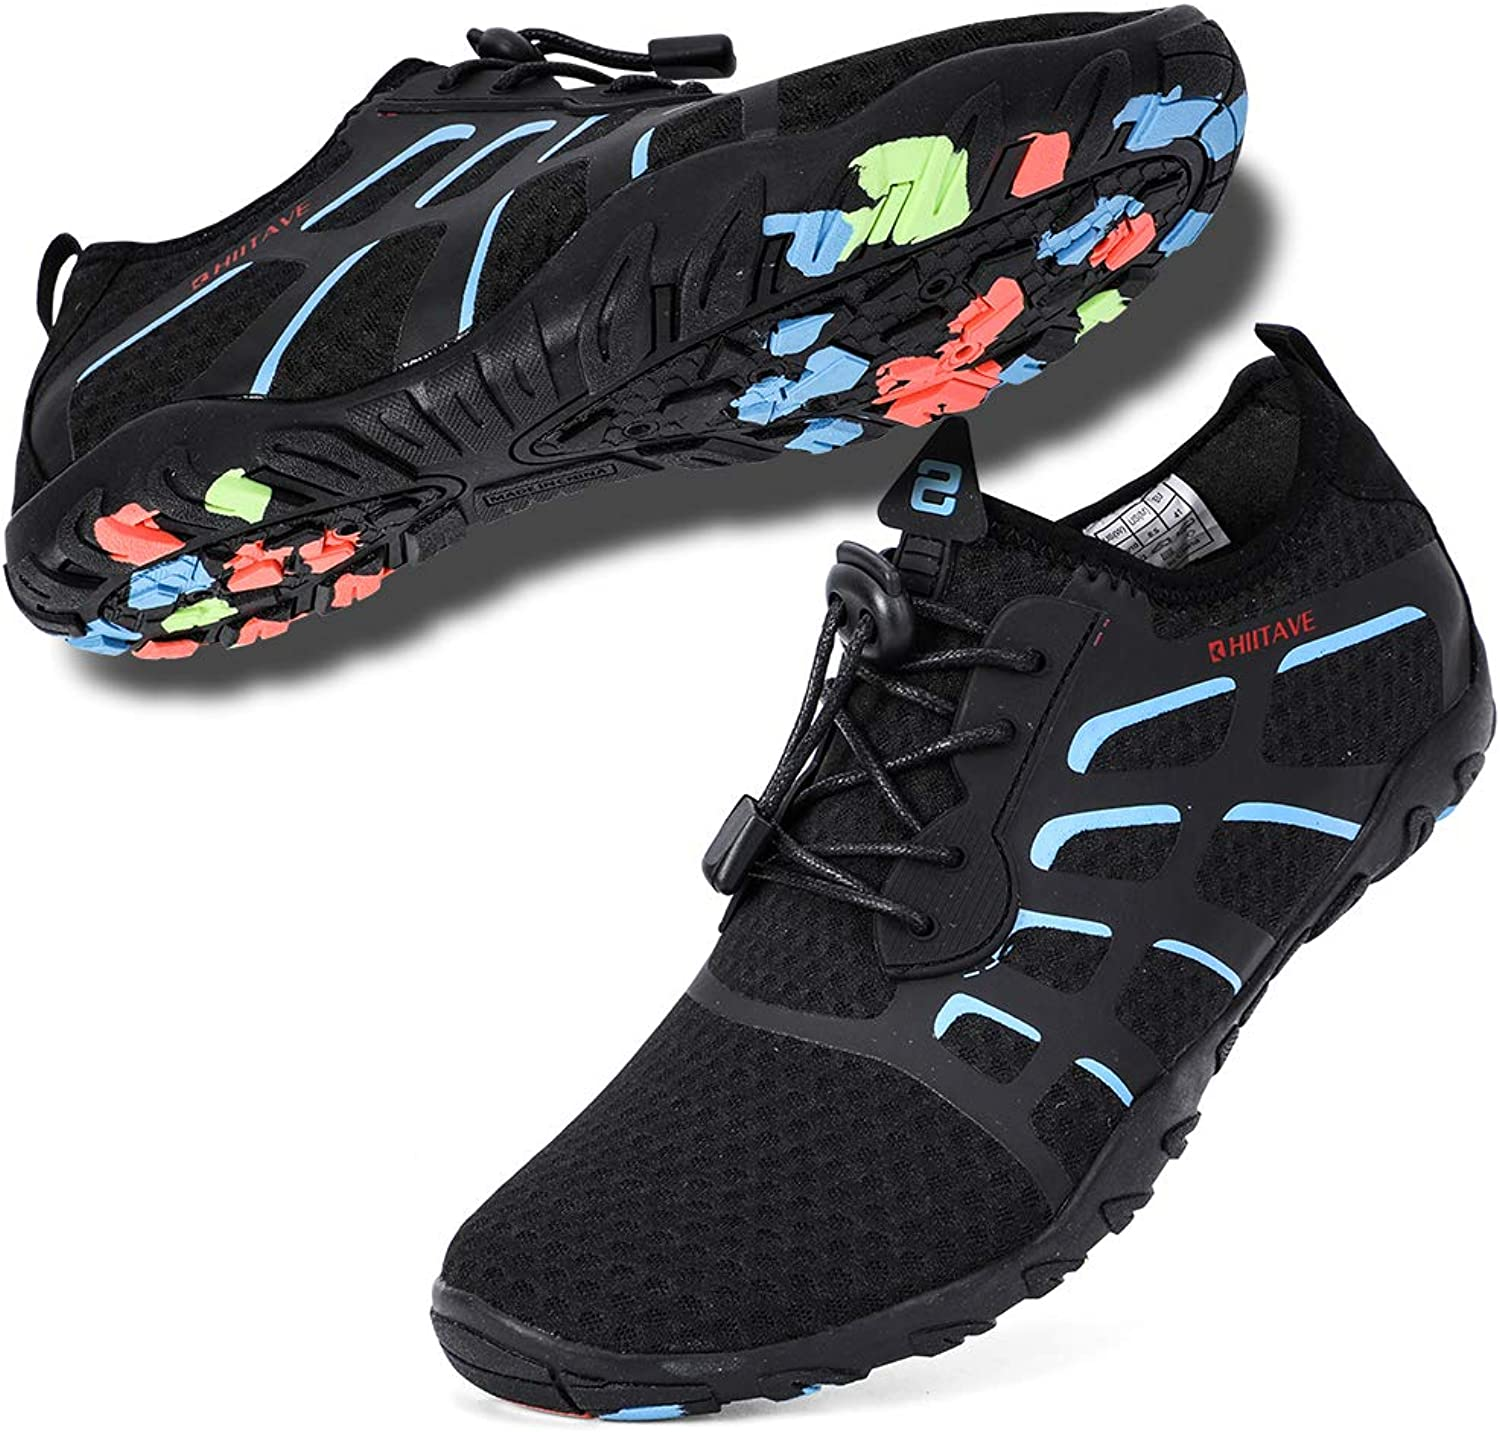 Hiitave Aqua Swim shoes Men, Adults Water shoes for Snokerling, Diving, Surf, Water Sports Black bluee W11 M9